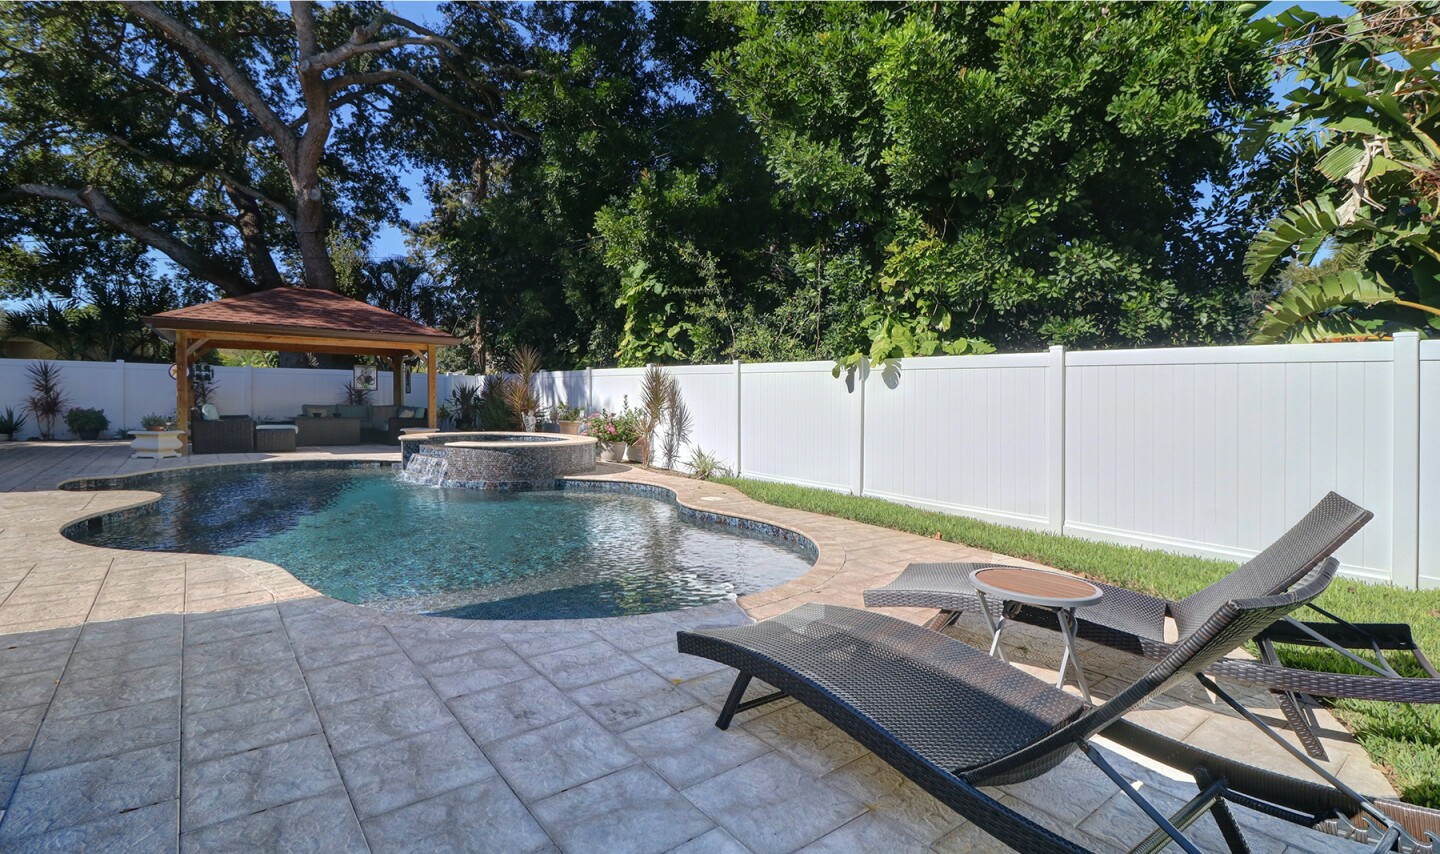 Recently remodeled, the single-story home expands to a fenced backyard with a pool, spa and gazebo.